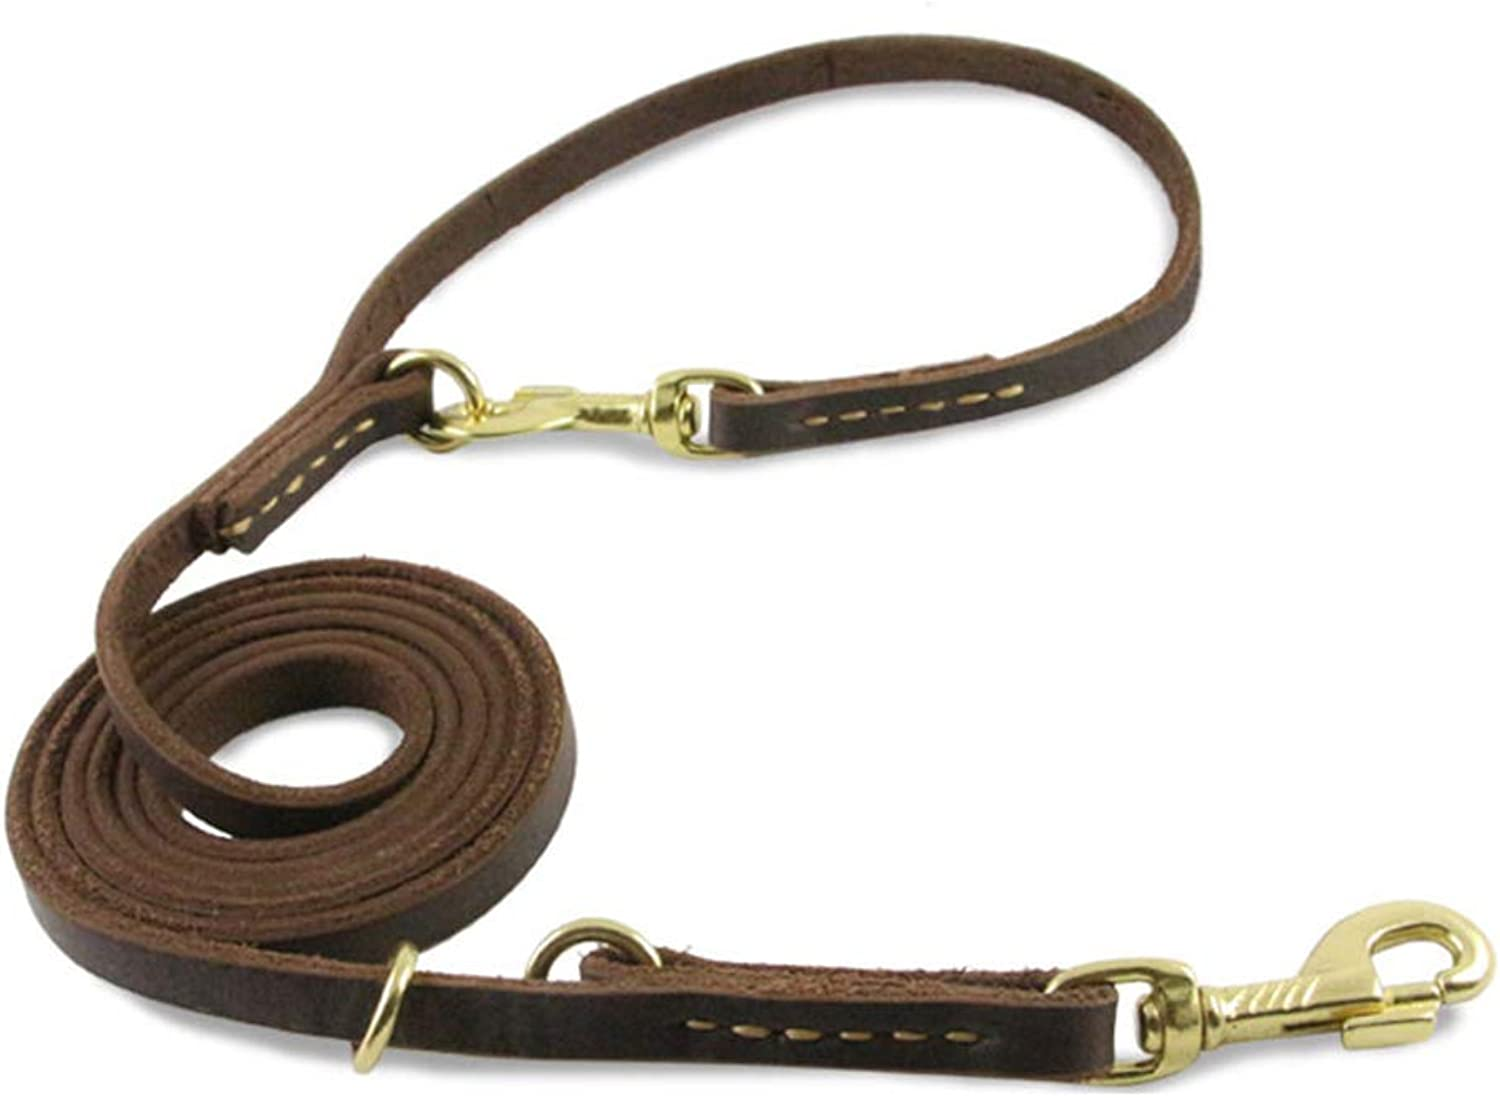 HATHOR23 Pet Leash Handmade Handmade MultiPurpose Pet Leashes Stretchable Dog Leather Dog Chain Tied Dog Rope Running Rope pet Leash